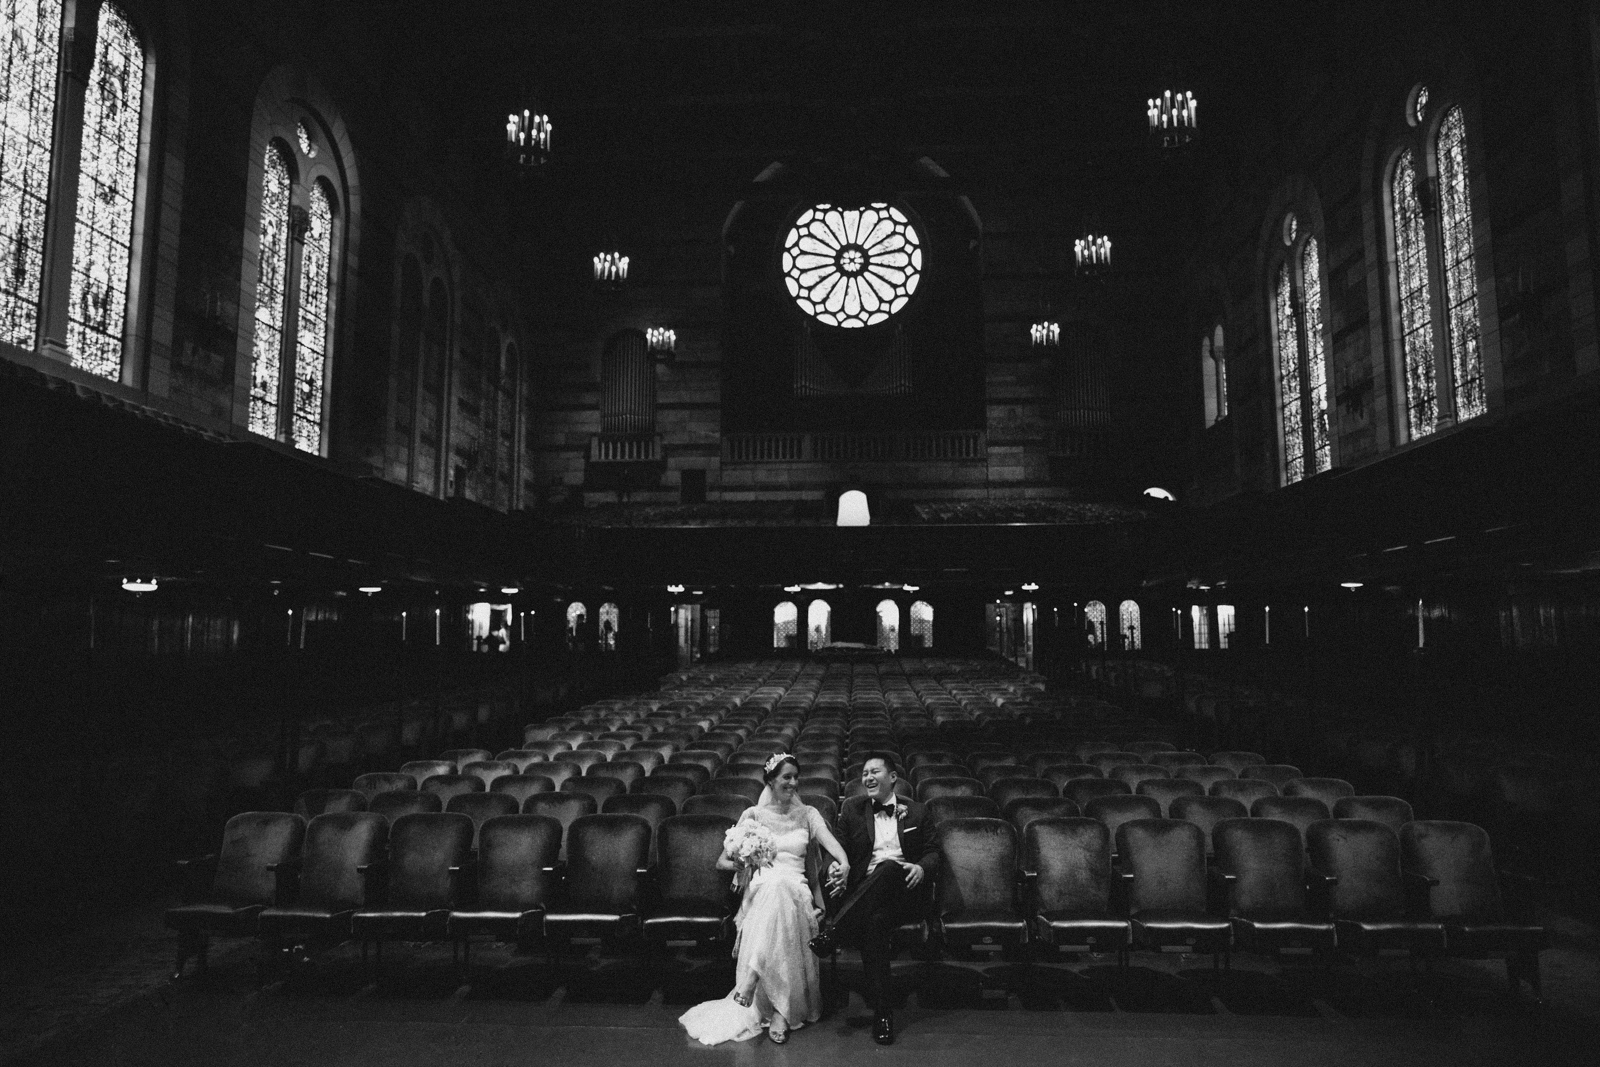 Fountain-Street-Church-and-Urban-Institute-of-Contemporary-Arts-Wedding-Kirstin-and-Khoi-011.jpg